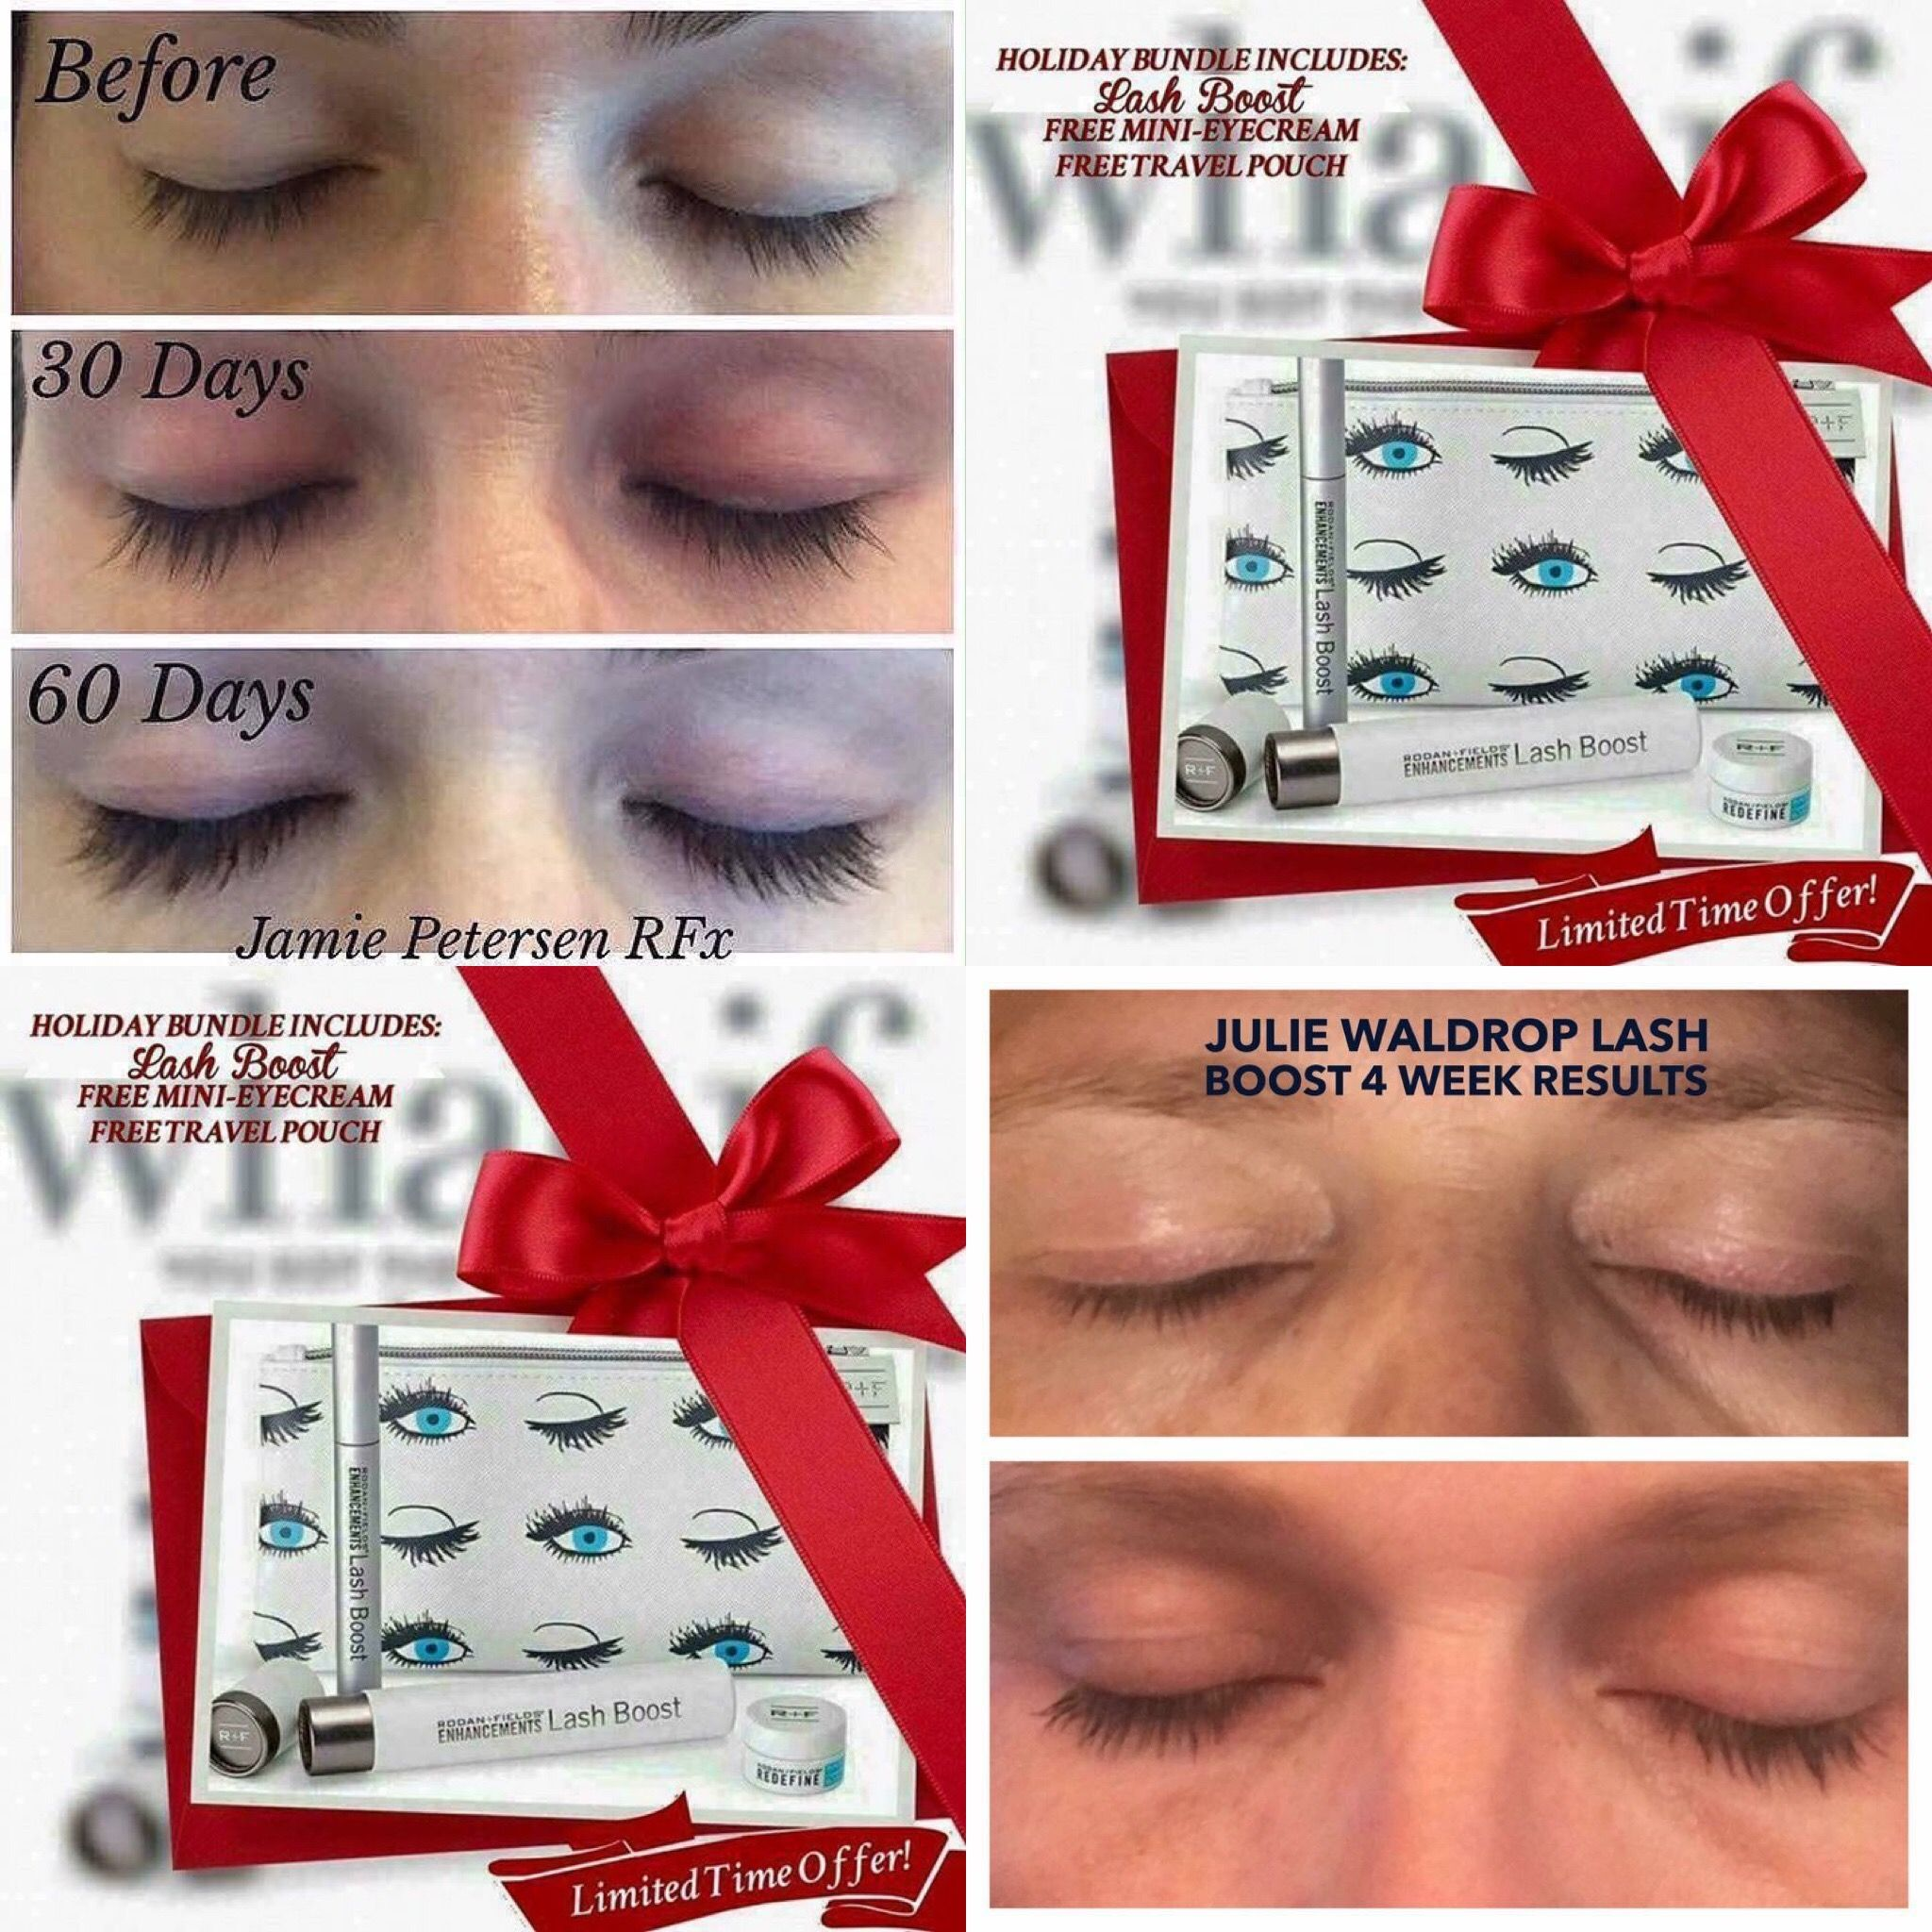 amazing gift idea only 5 more weekends until christmas want longer darker fuller looking lashes before christmas need a gift for yourself